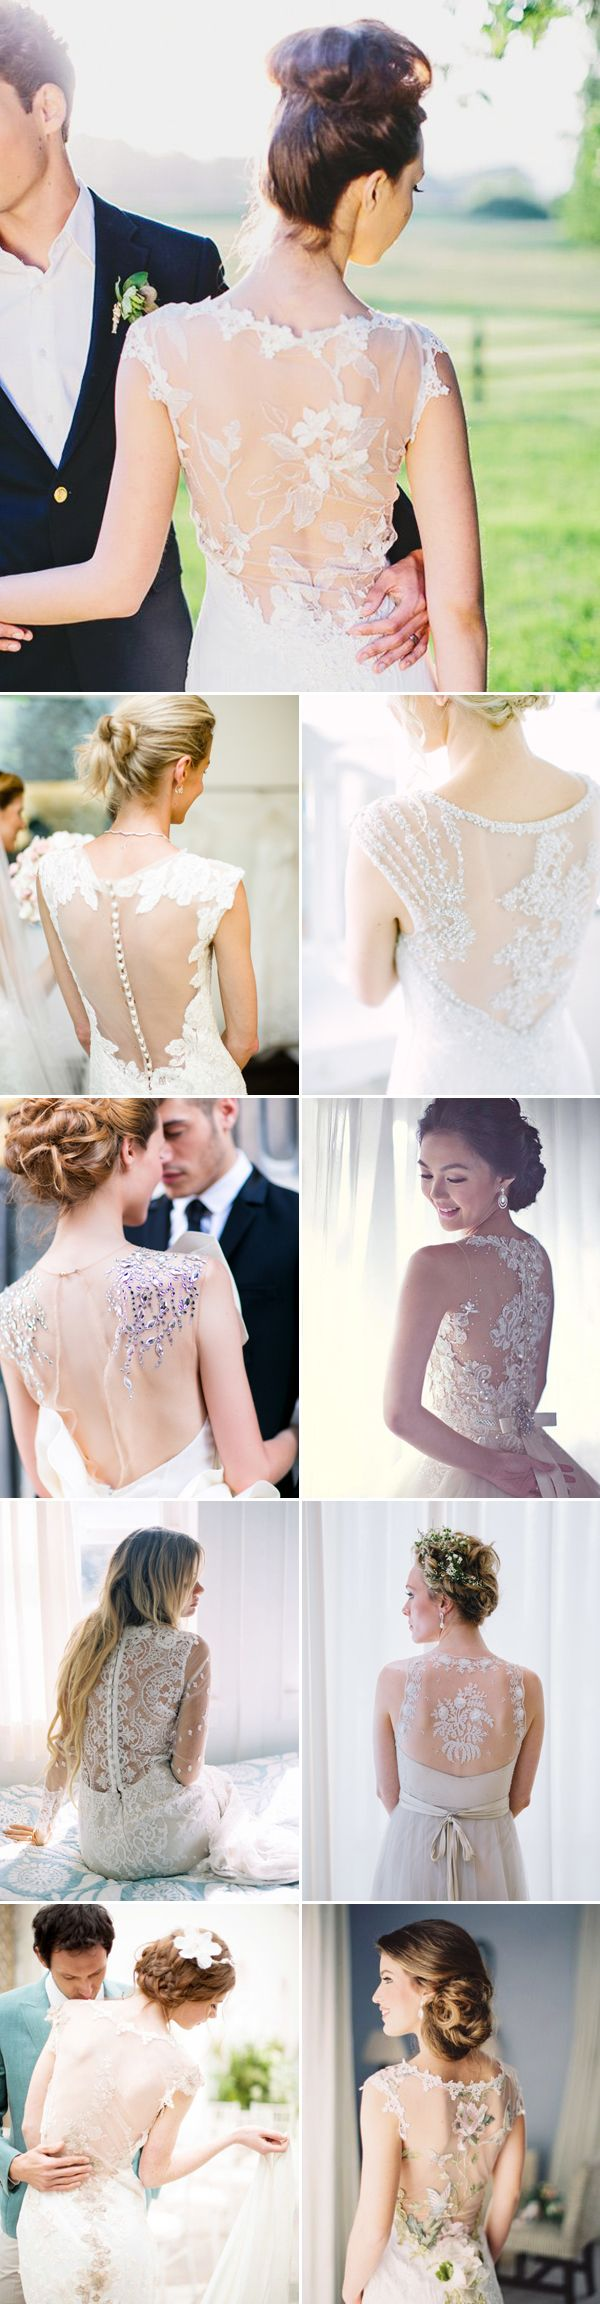 30 Gorgeous Real Brides' Illusion Gowns - Illusion Back